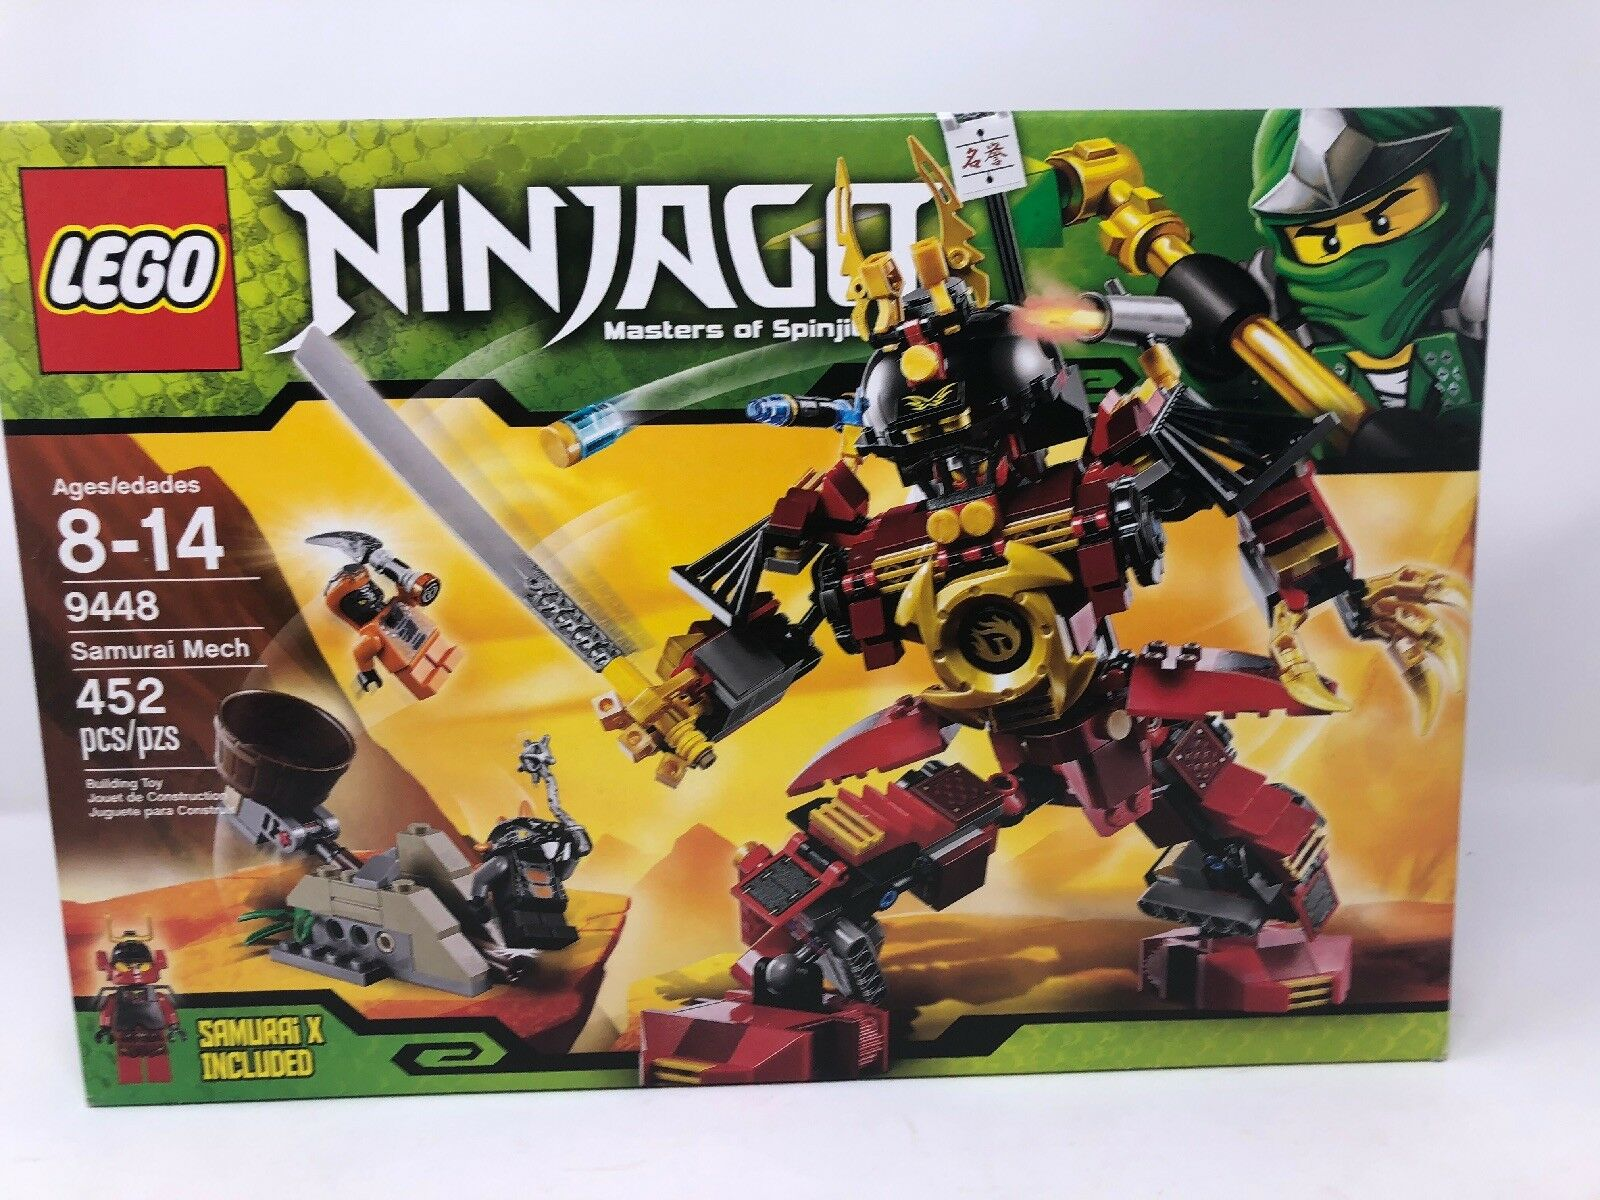 Nuovo Lego Ninjago Masters of Spinjitzu 9448 Samurai Mech w/ Samurai X Included